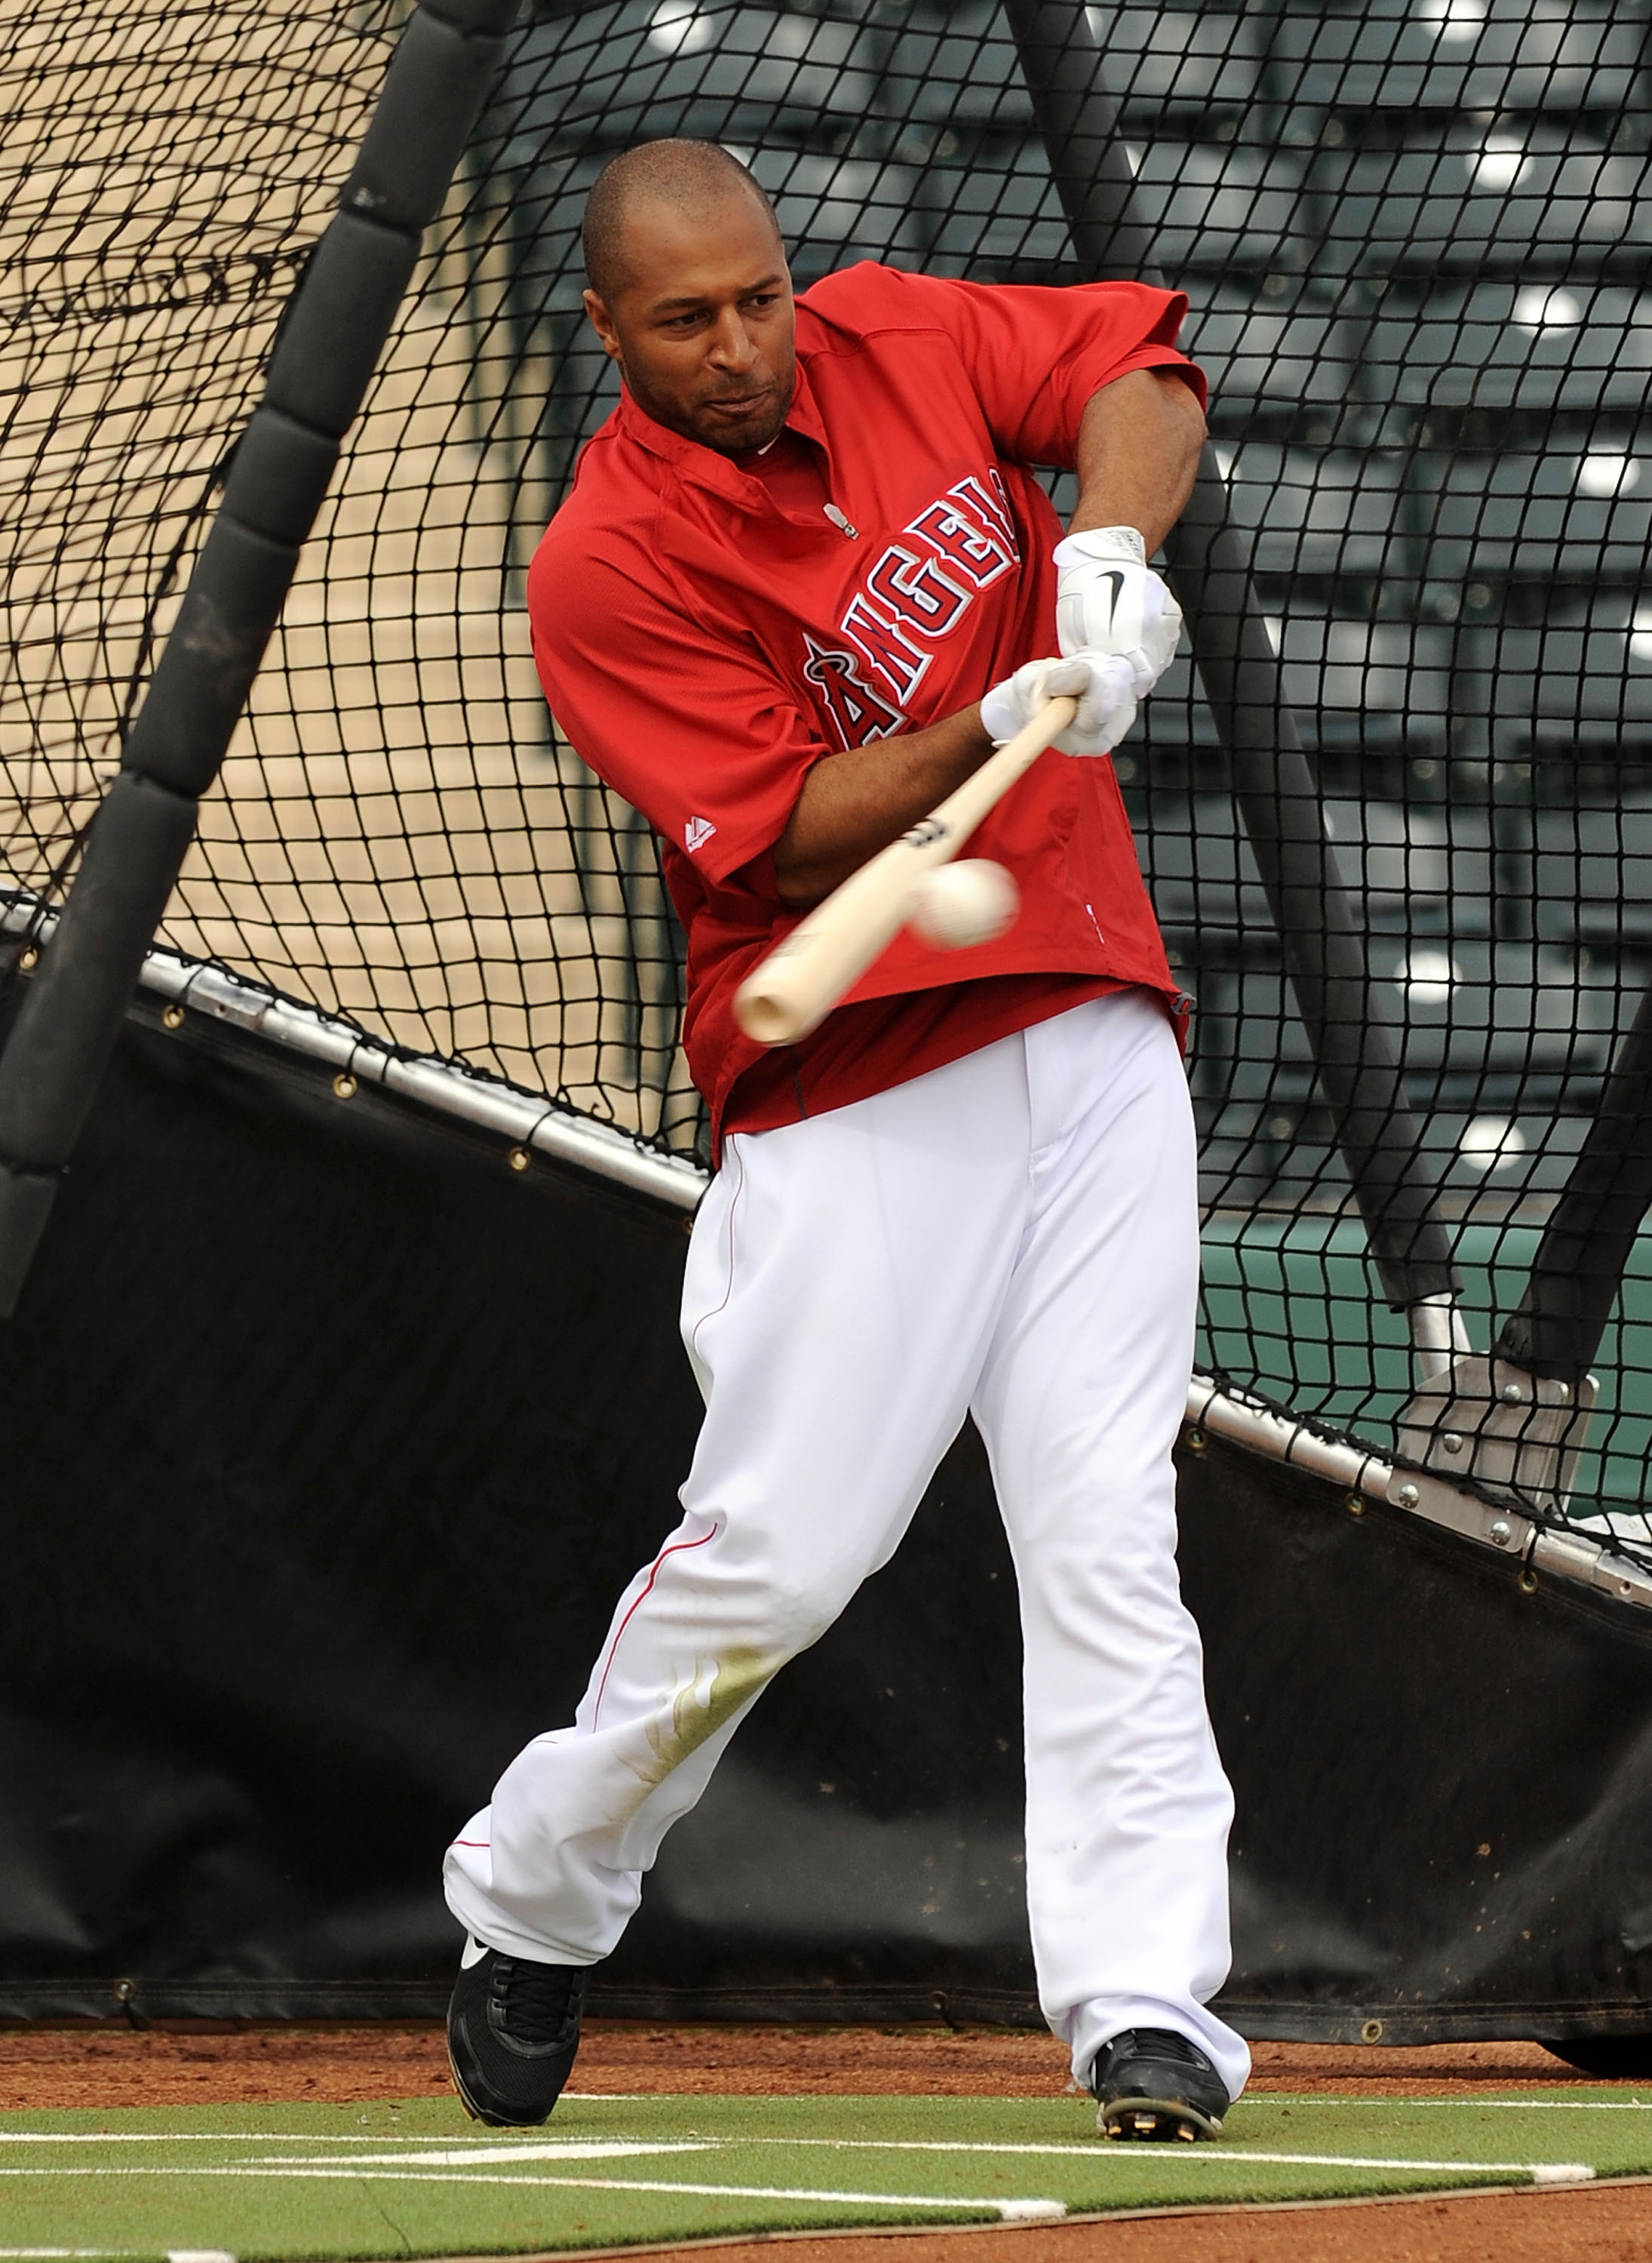 TEMPE, AZ - FEBRUARY 26:  Vernon Wells #10 of the Los Angeles Angels of Anaheim takes batting practice prior to the Los Angeles Dodgers game at Tempe Diablo Stadium on February 26, 2011 in Tempe, Arizona.  (Photo by Norm Hall/Getty Images)